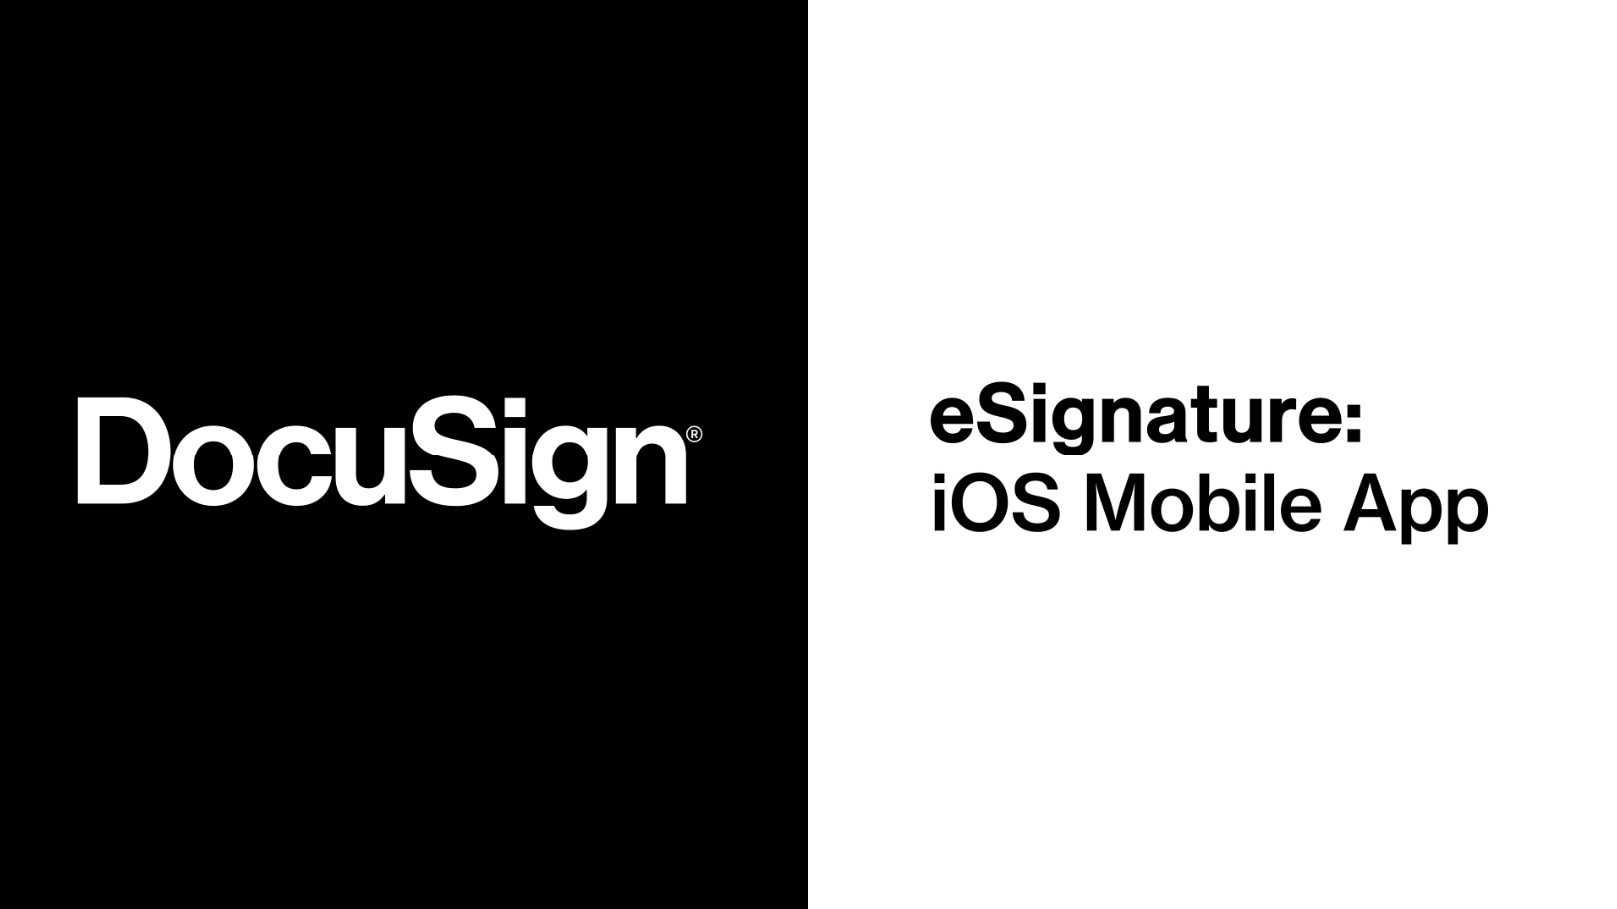 DocuSign iOS Mobile App Overview